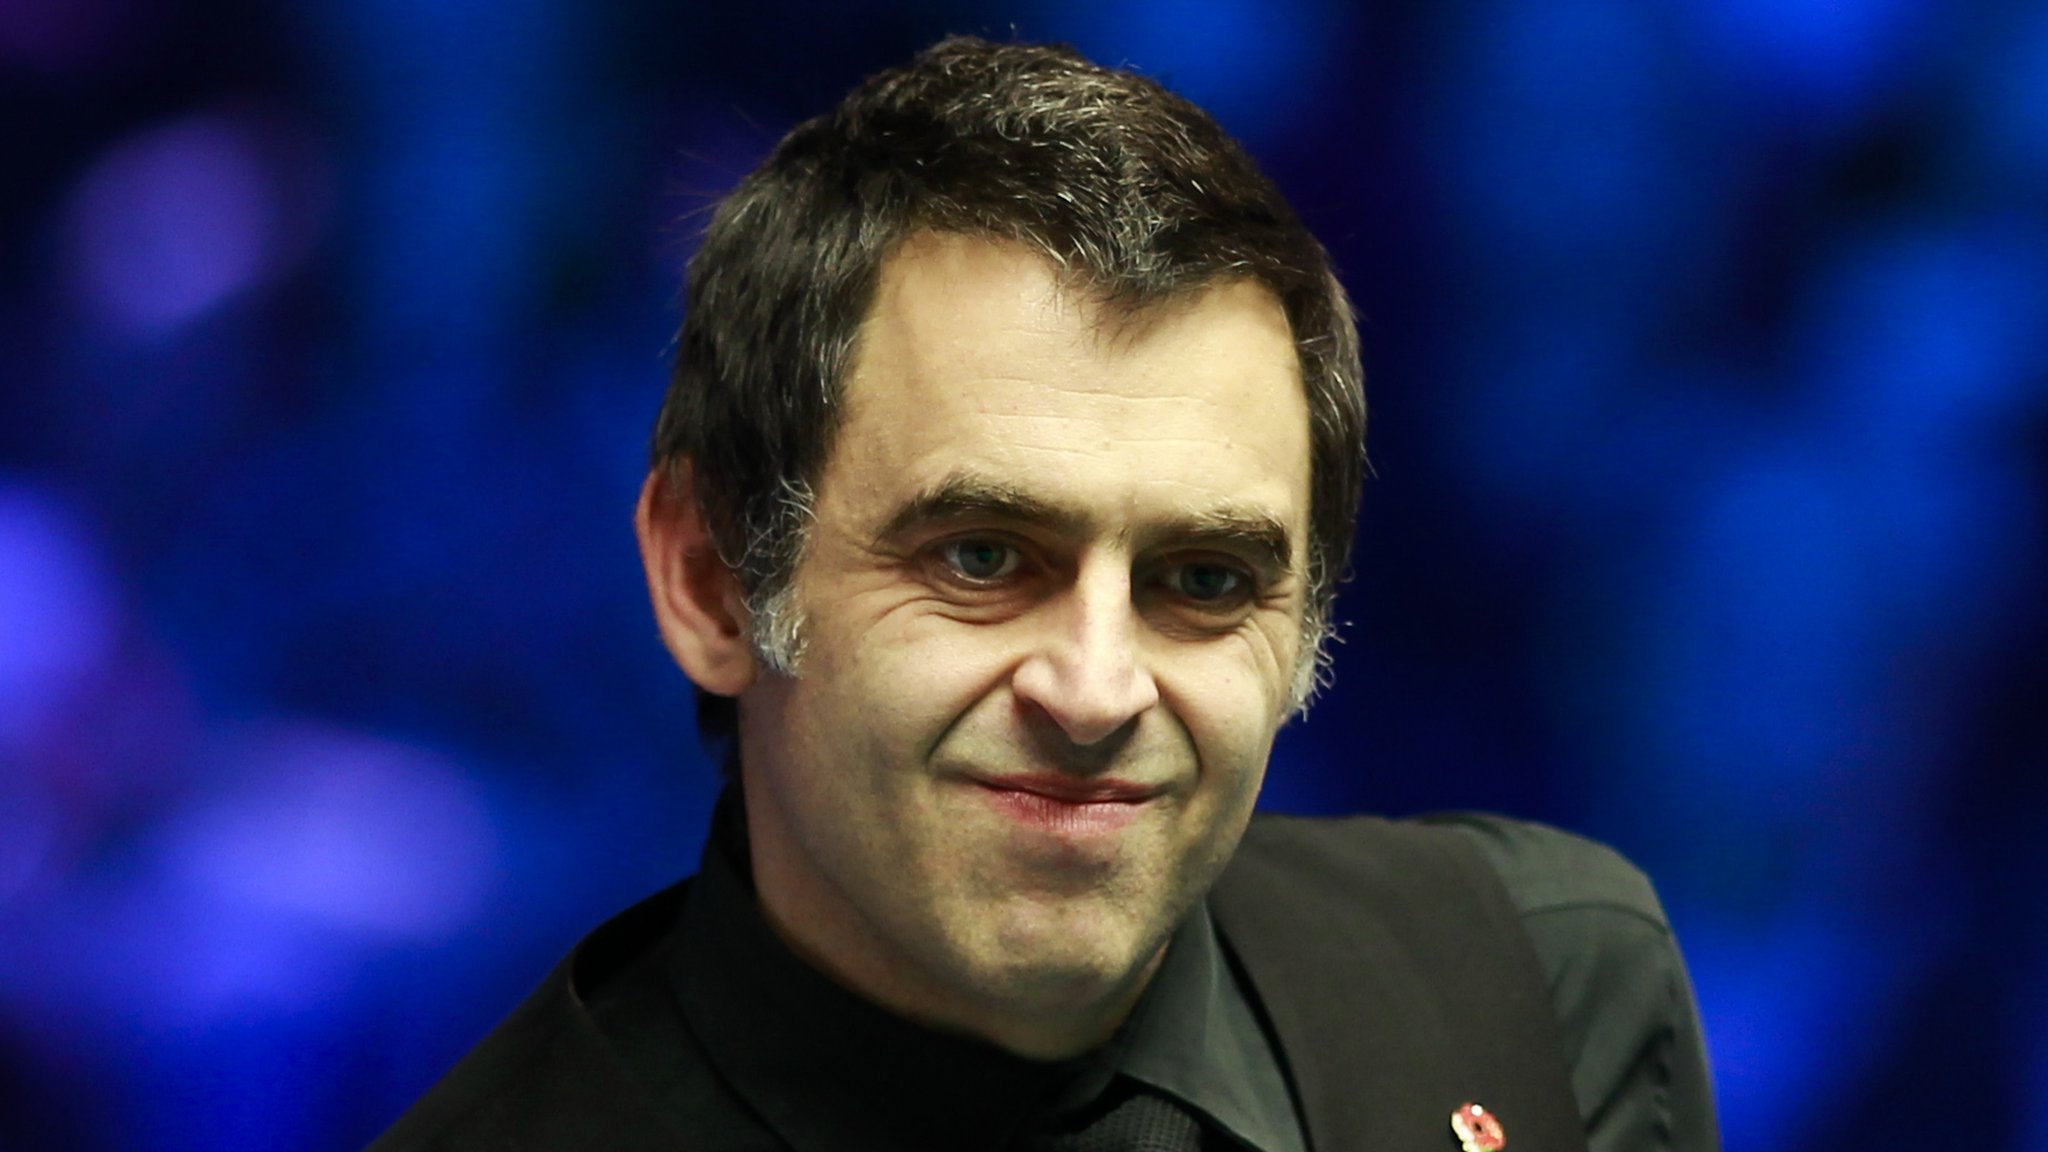 NI Open: Ronnie O'Sullivan and Mark Selby advance to semi-final match